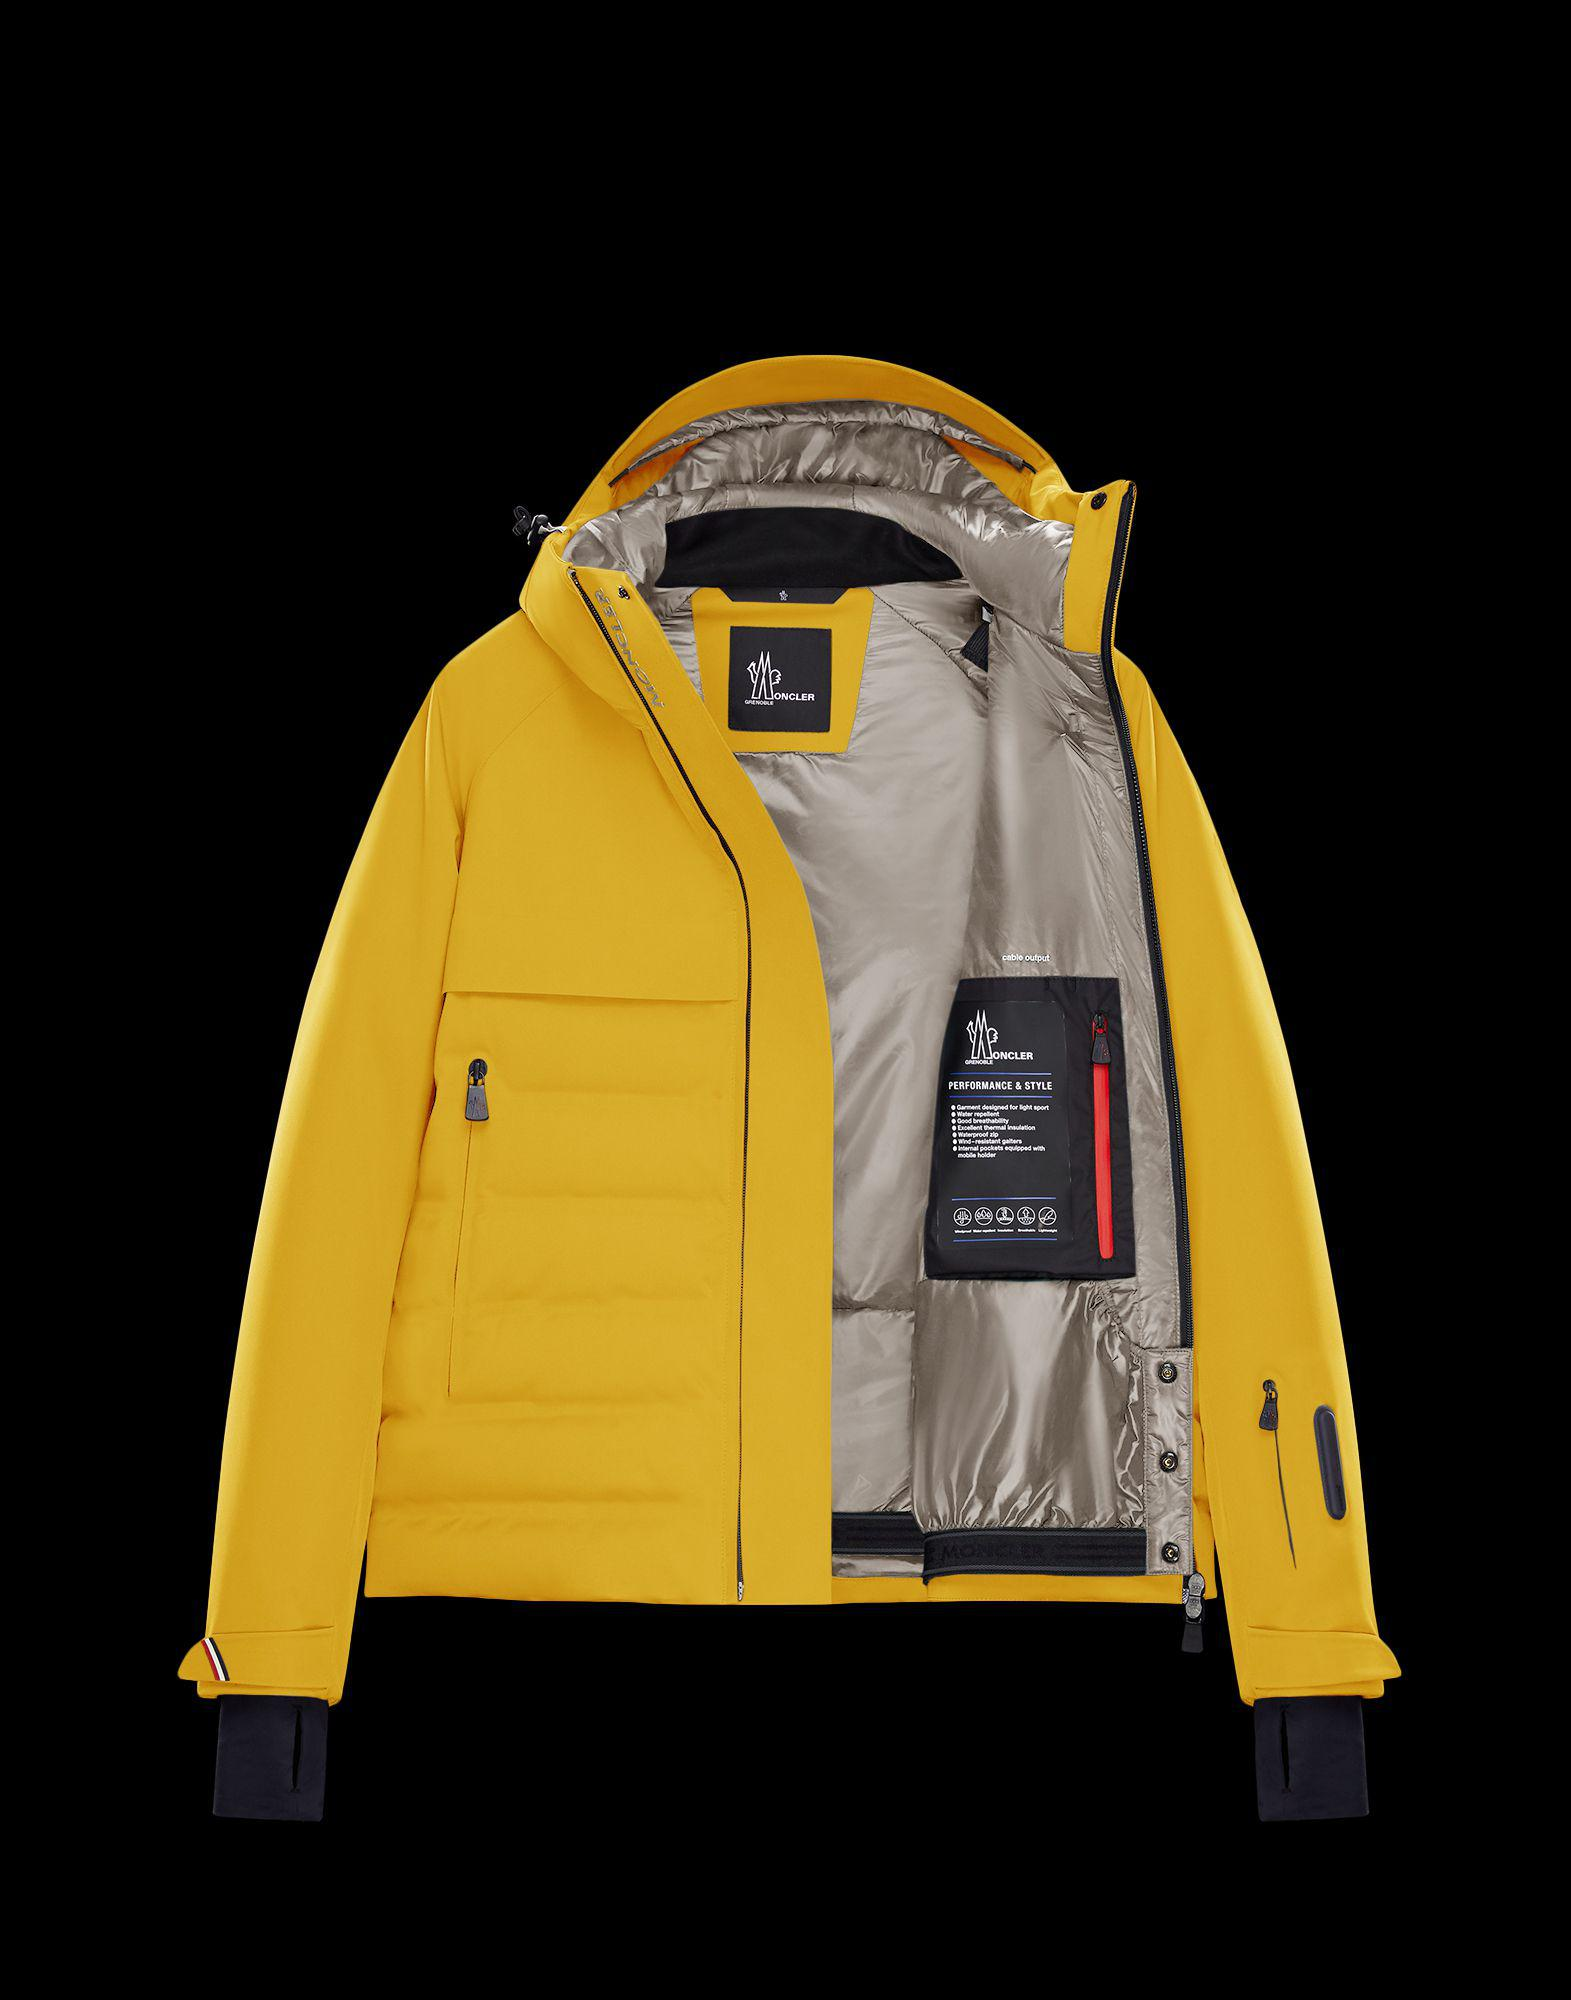 9ec9af688bfb1 Lyst - Moncler Grenoble Achensee in Yellow for Men